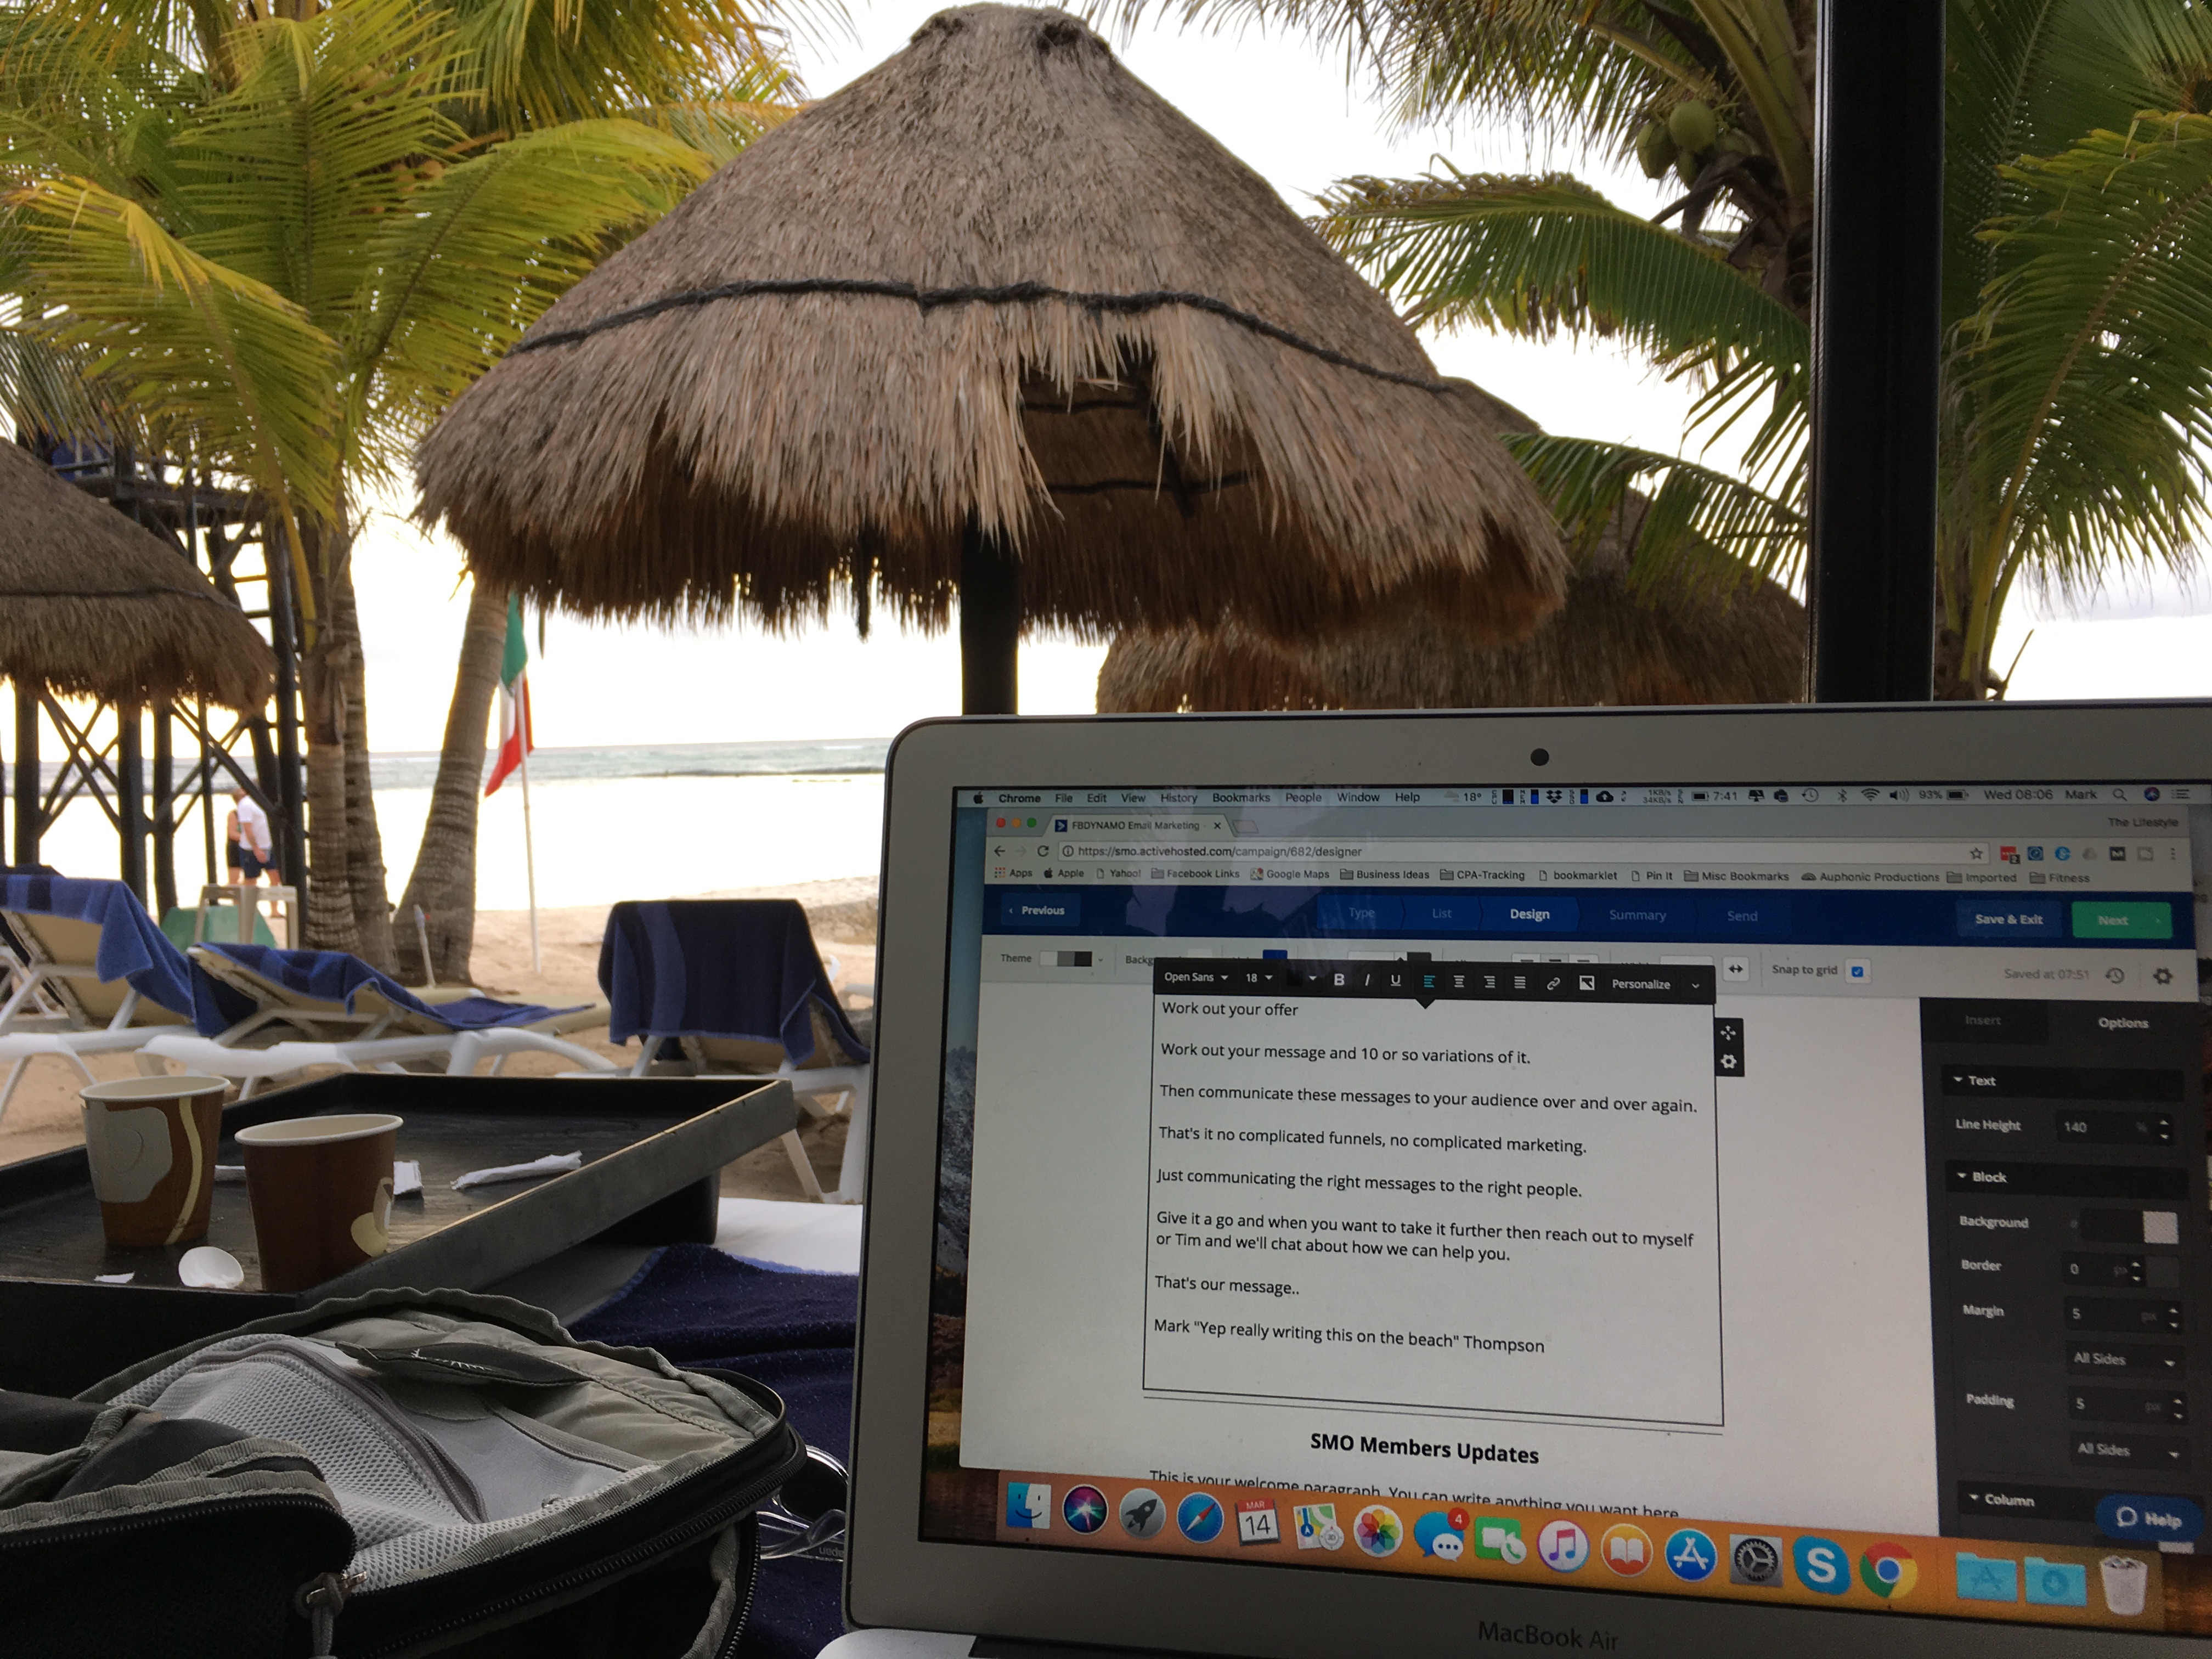 Not a Stock Photo!  This is me writing an email on  a mexican beach